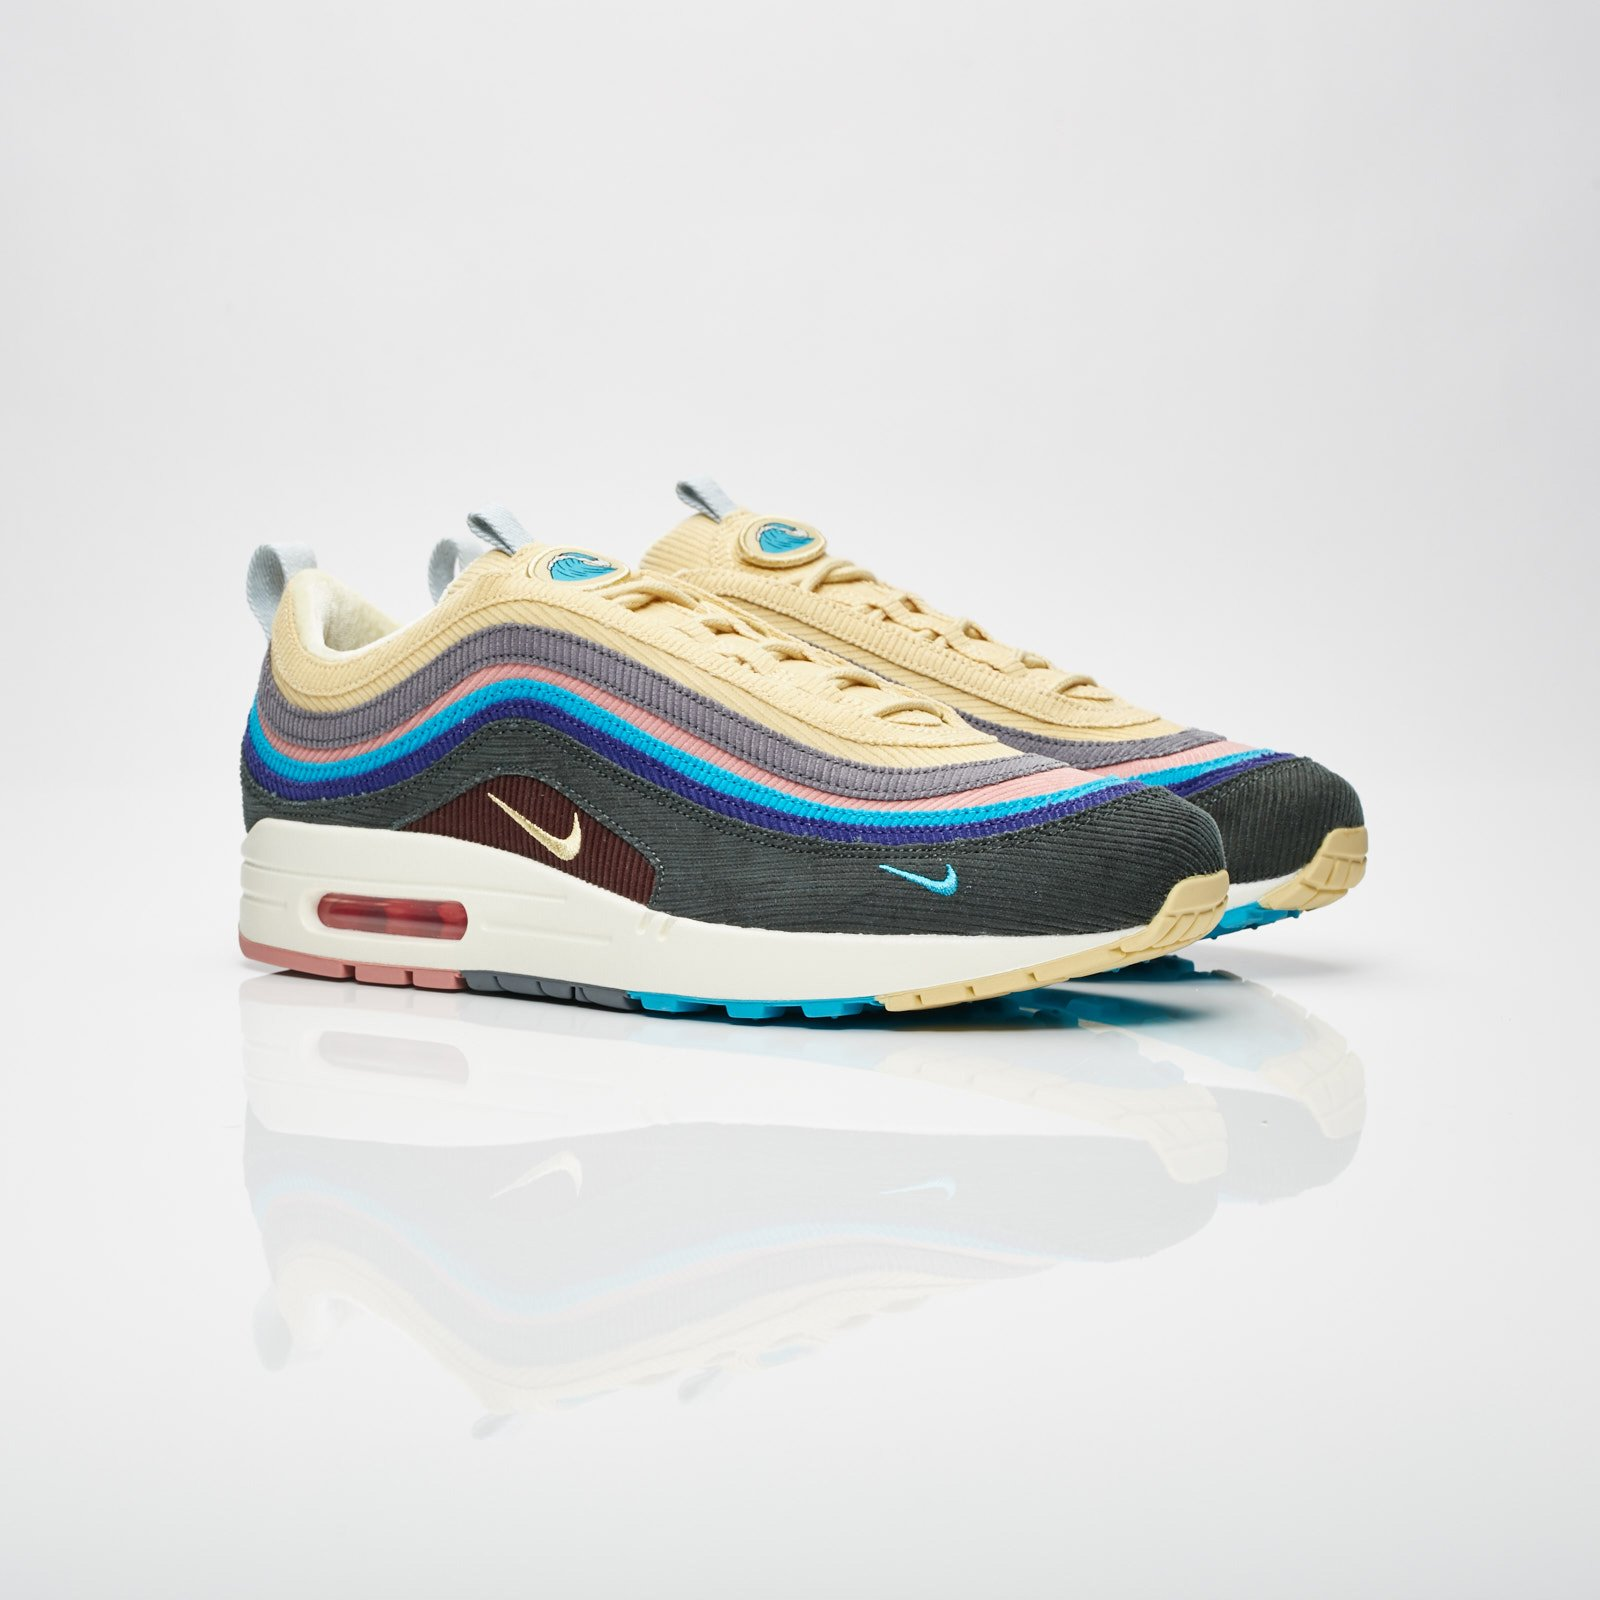 huge discount 1c81d 8a4a9 Nike Air Max 1/97 VF Sean Wotherspoon - Aj4219-400 ...